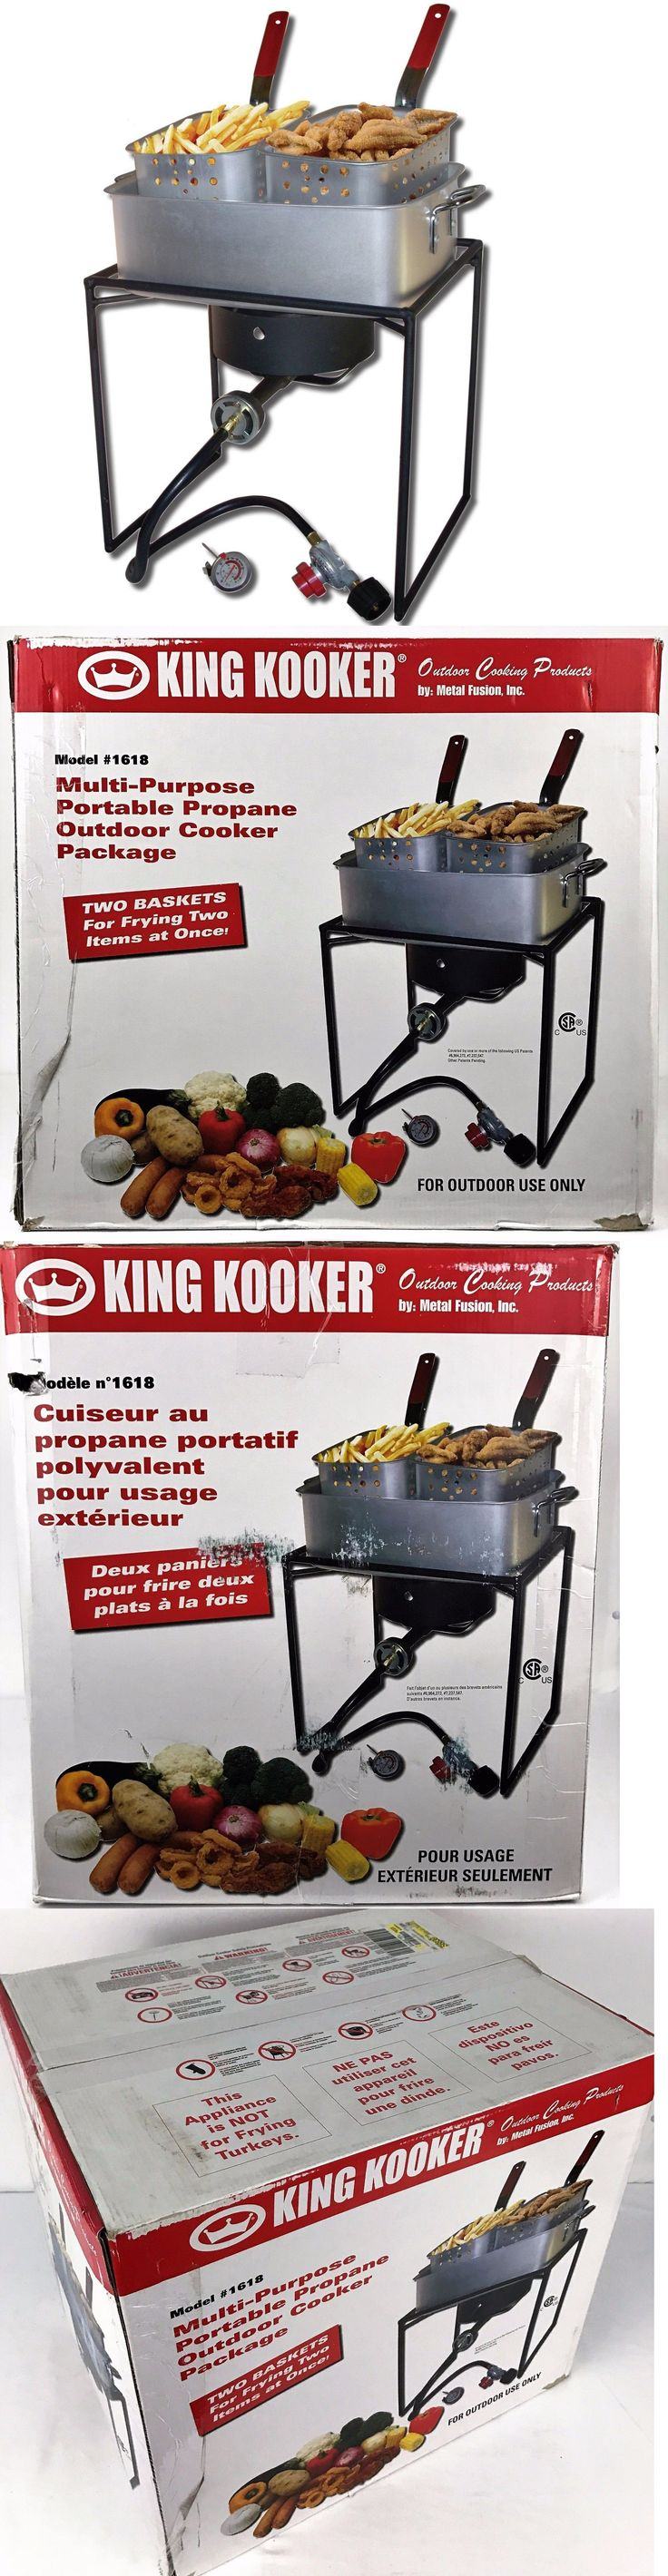 Other Outdoor Cooking and Eating 159926: King Kooker Outdoor Propane Deep Fryer Cooker W 15 Qt Fry Pan + 2 Baskets #1618 -> BUY IT NOW ONLY: $59.99 on eBay!